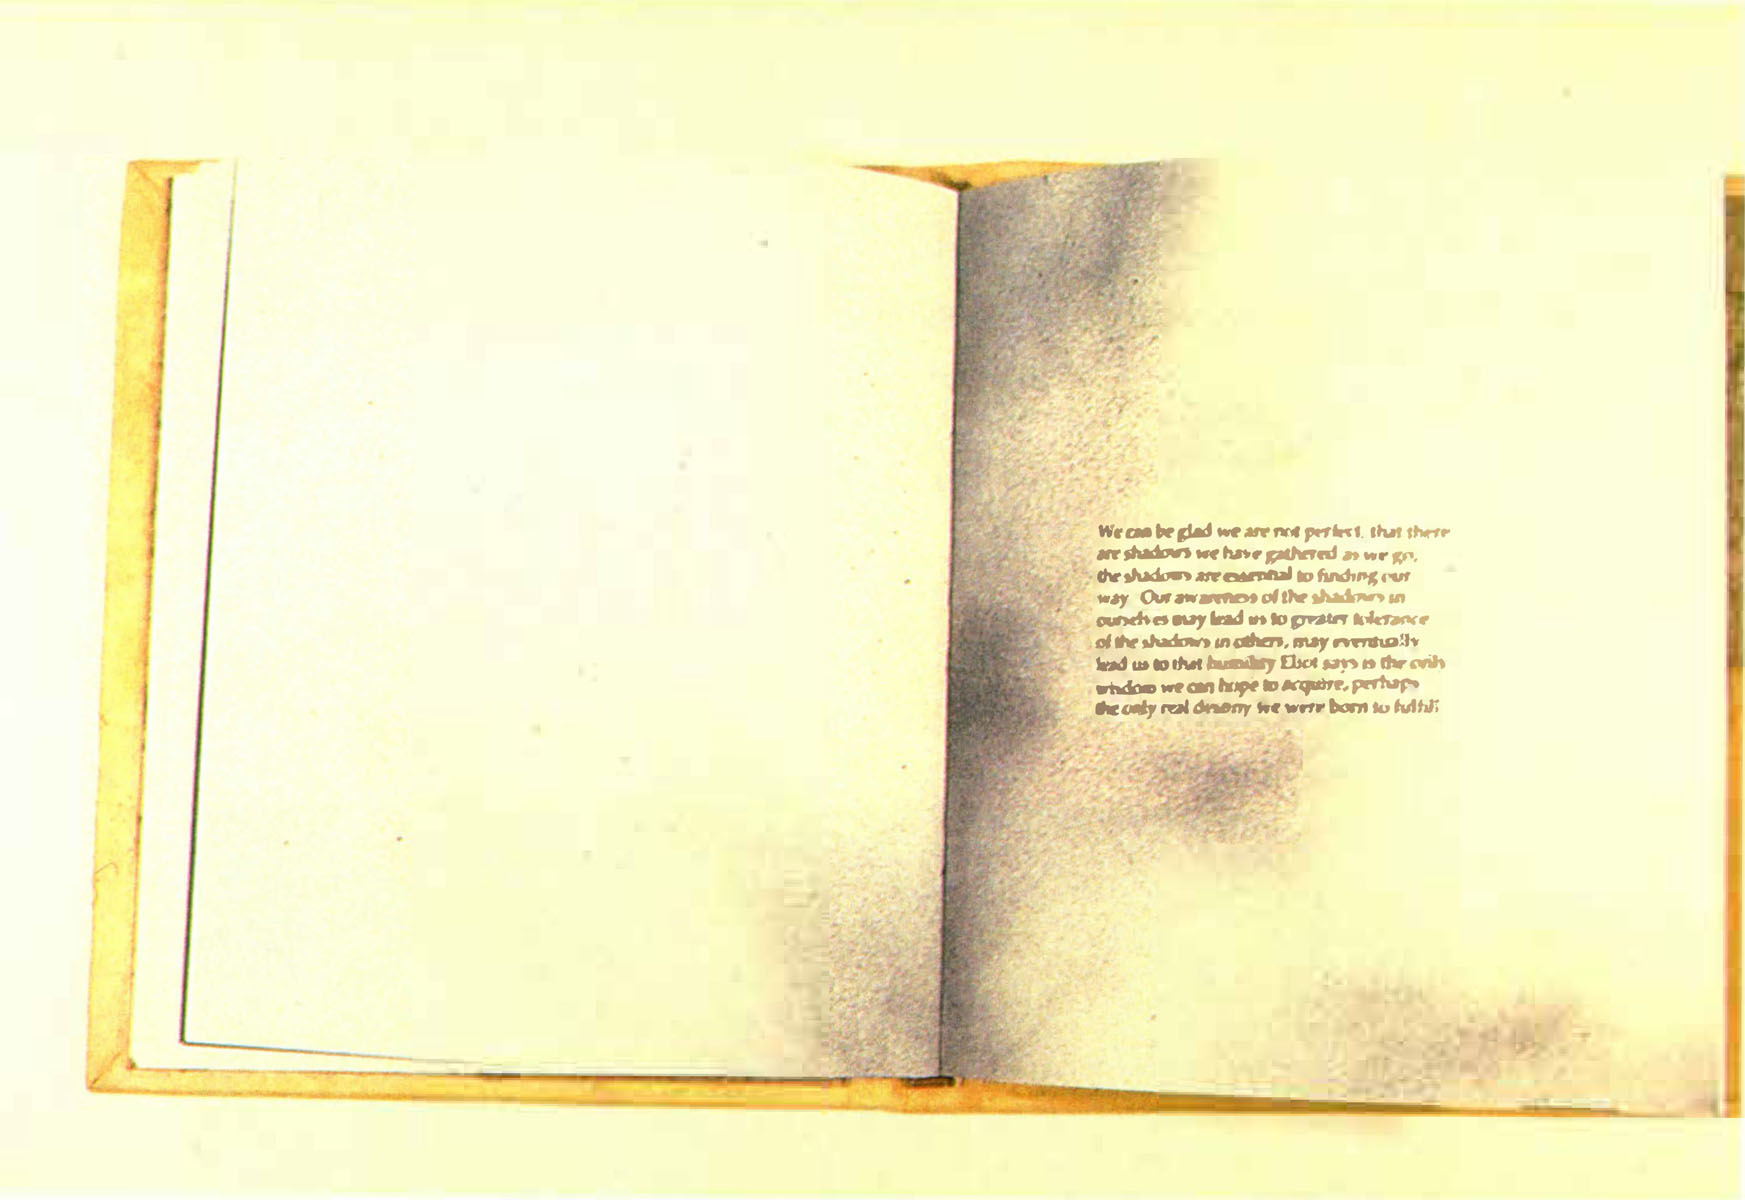 ©1995, Starla Stensaas, White Out